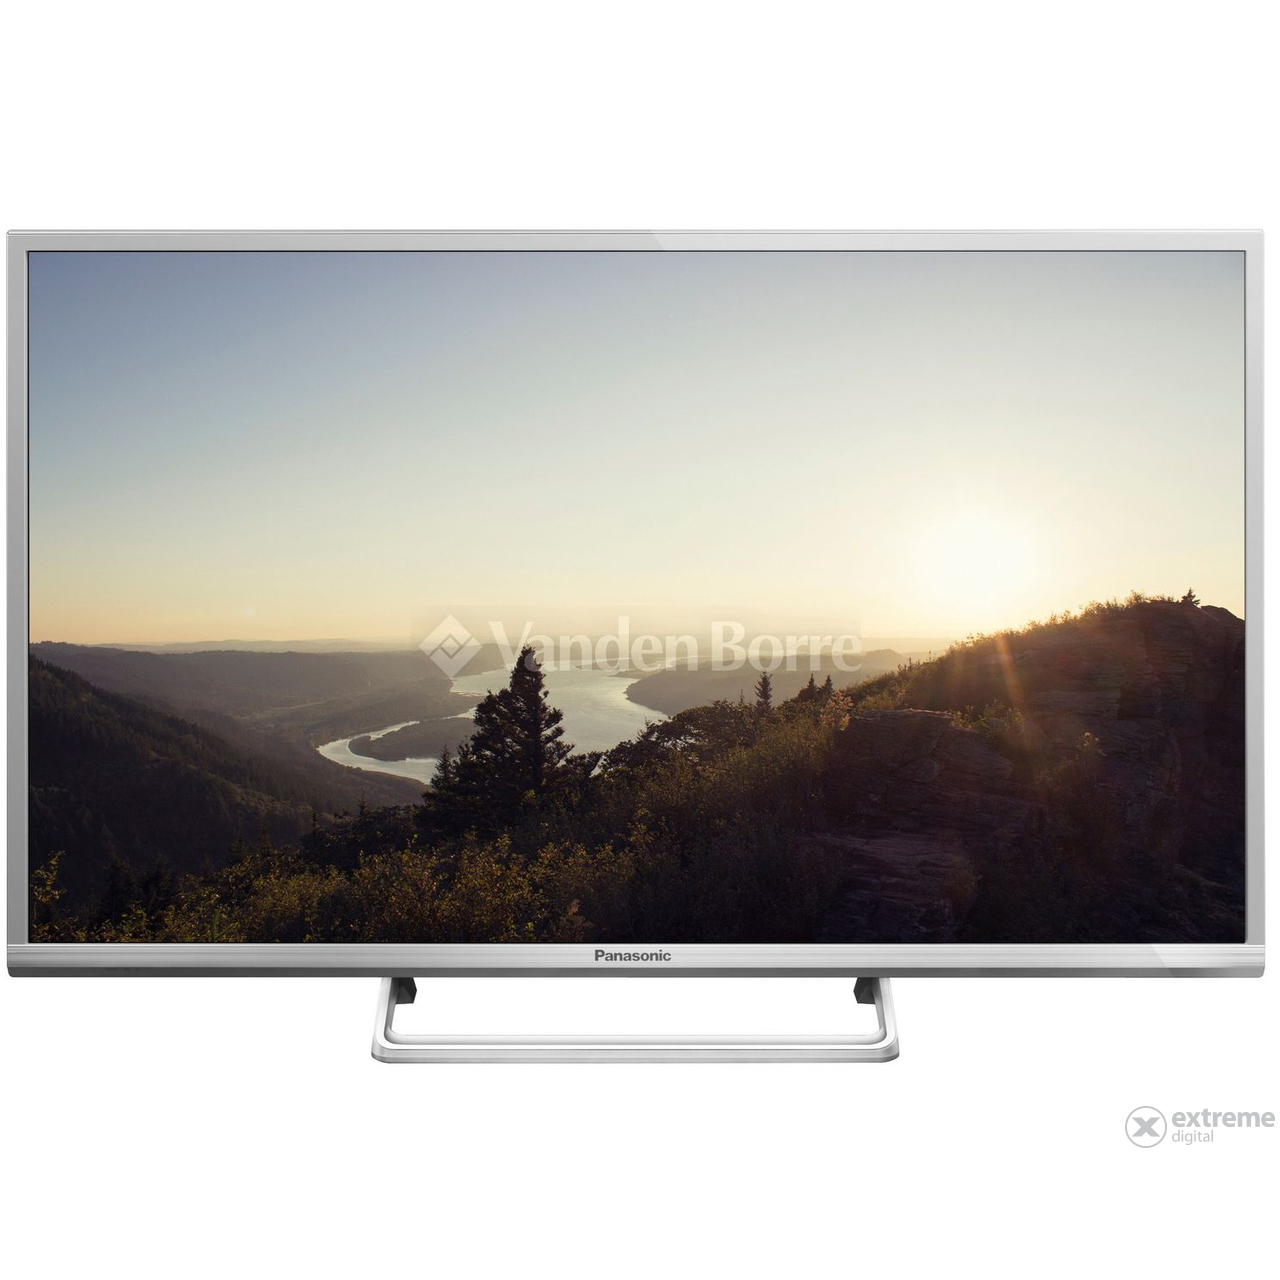 panasonic-tx-40cs610ew-smart-led-televizio-feher_832d772c.jpg